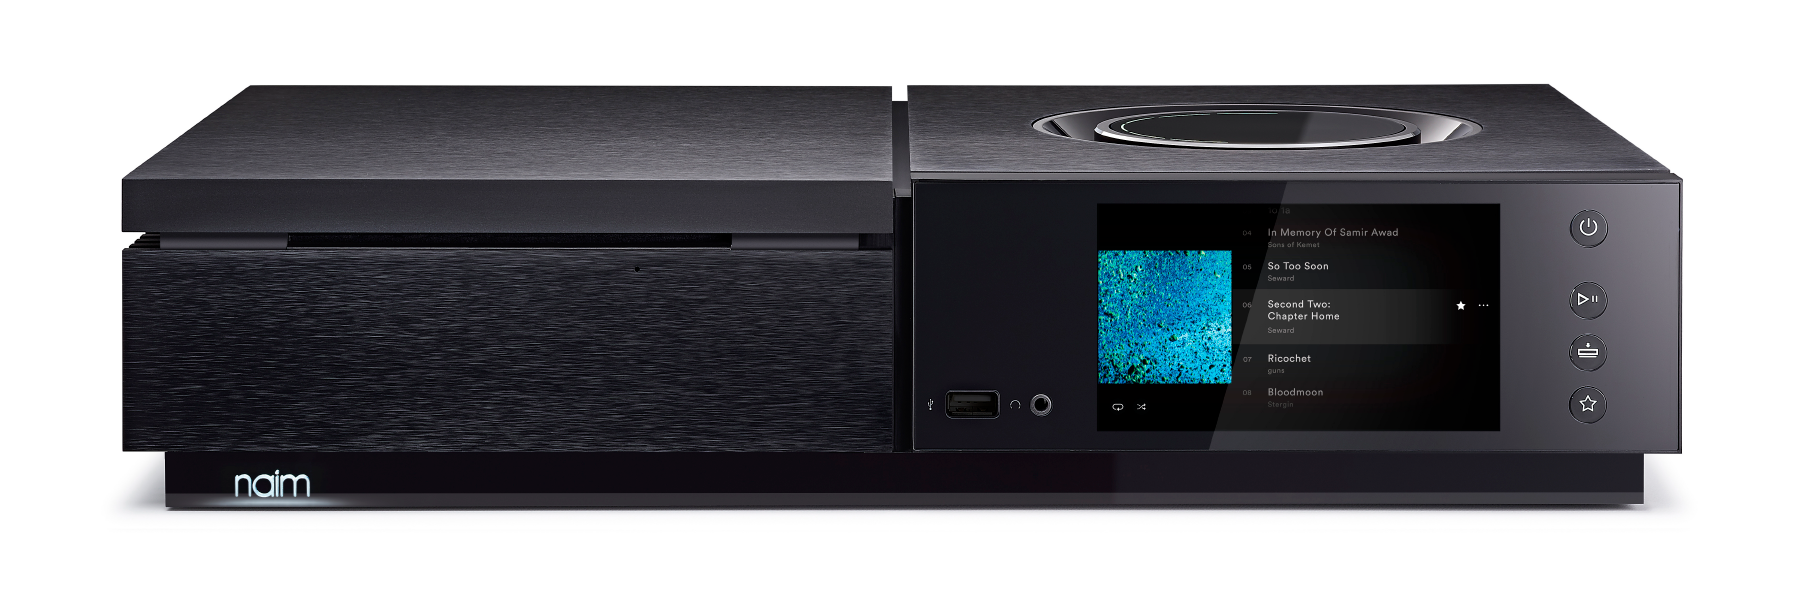 Naim-Star-front-view